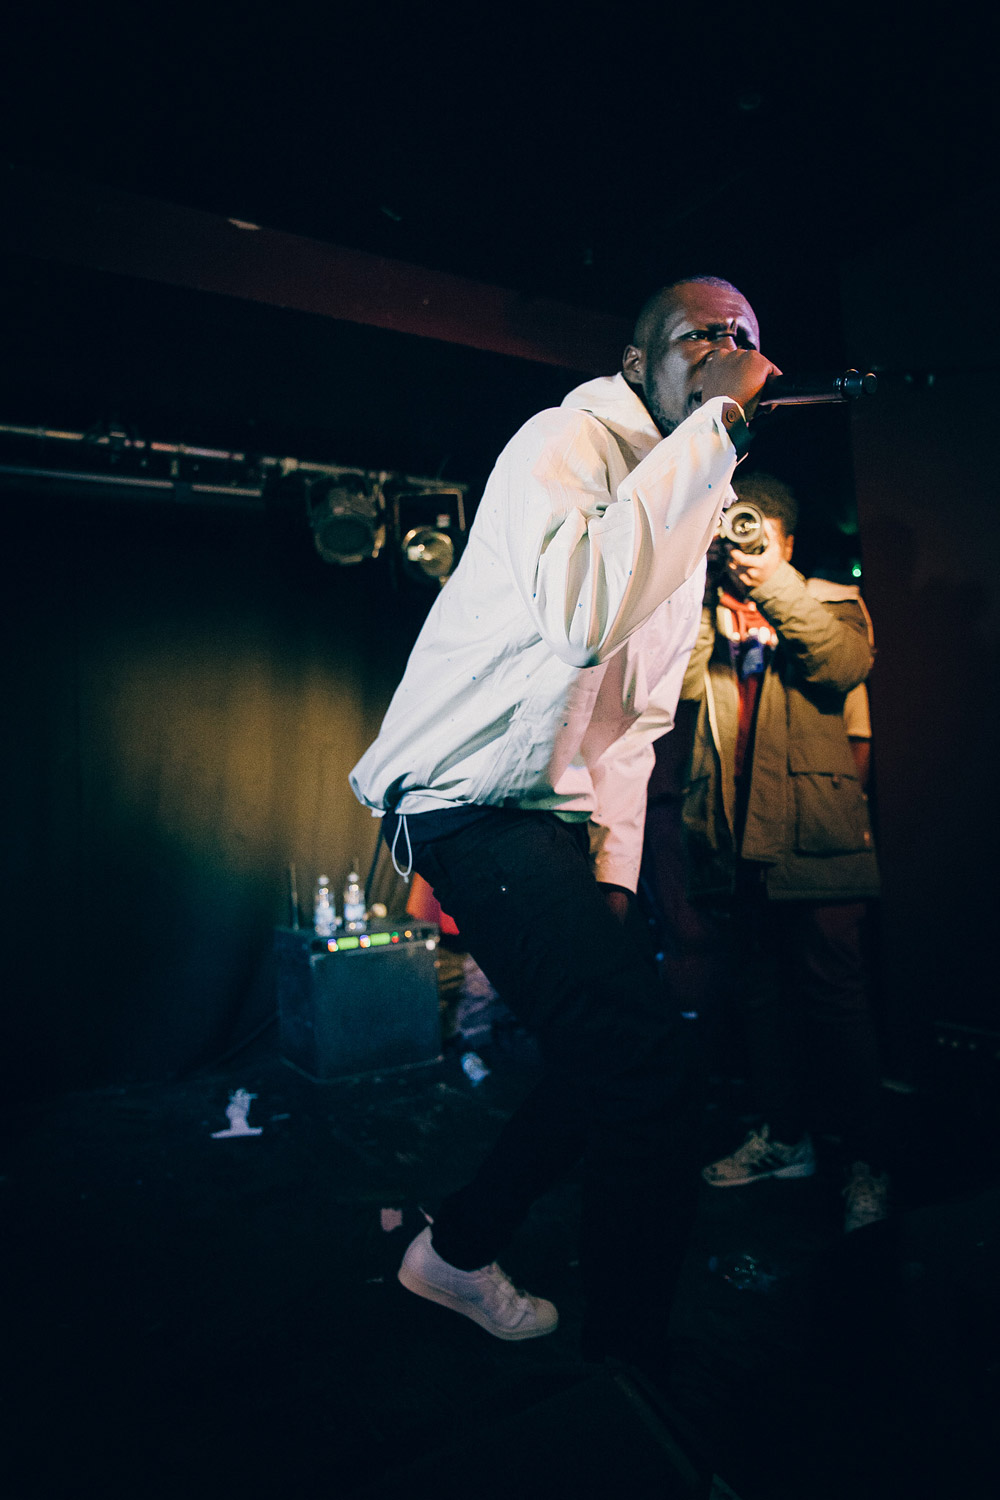 Stormzy @ O2 Academy Islington, London 31/03/15